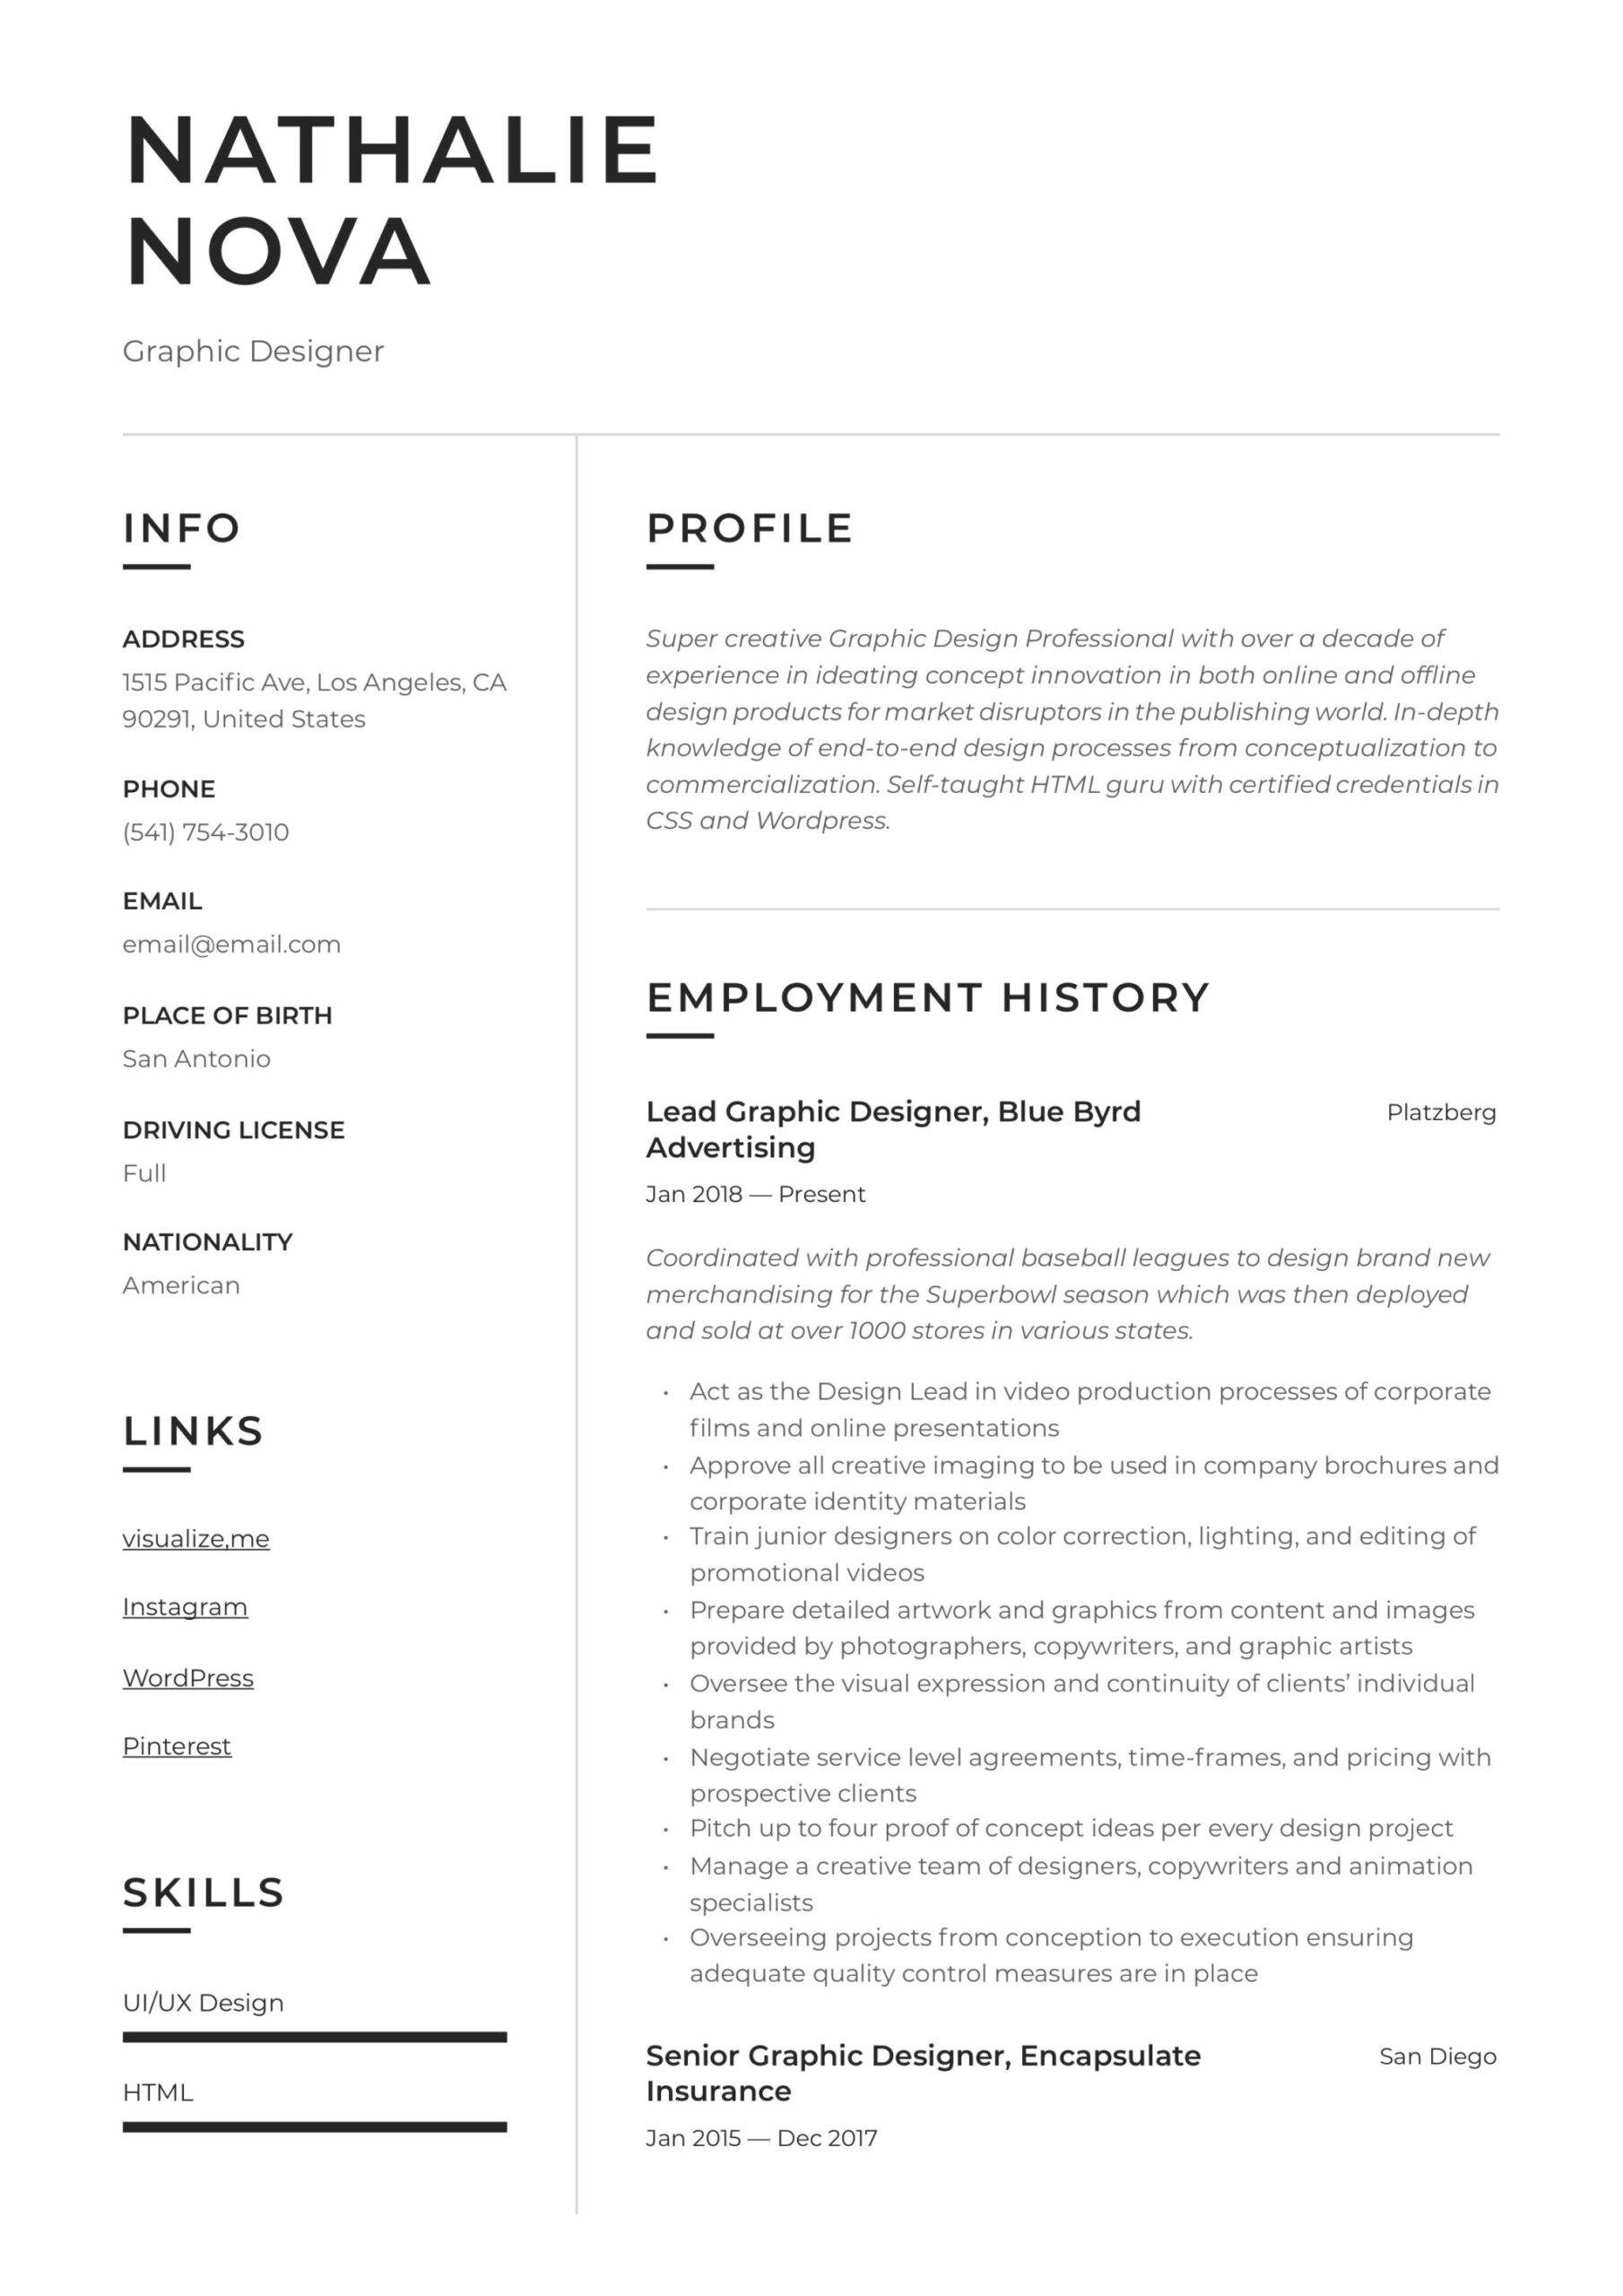 graphic designer resume writing guide examples sample word format free skills and Resume Graphic Designer Resume Sample Word Format Free Download